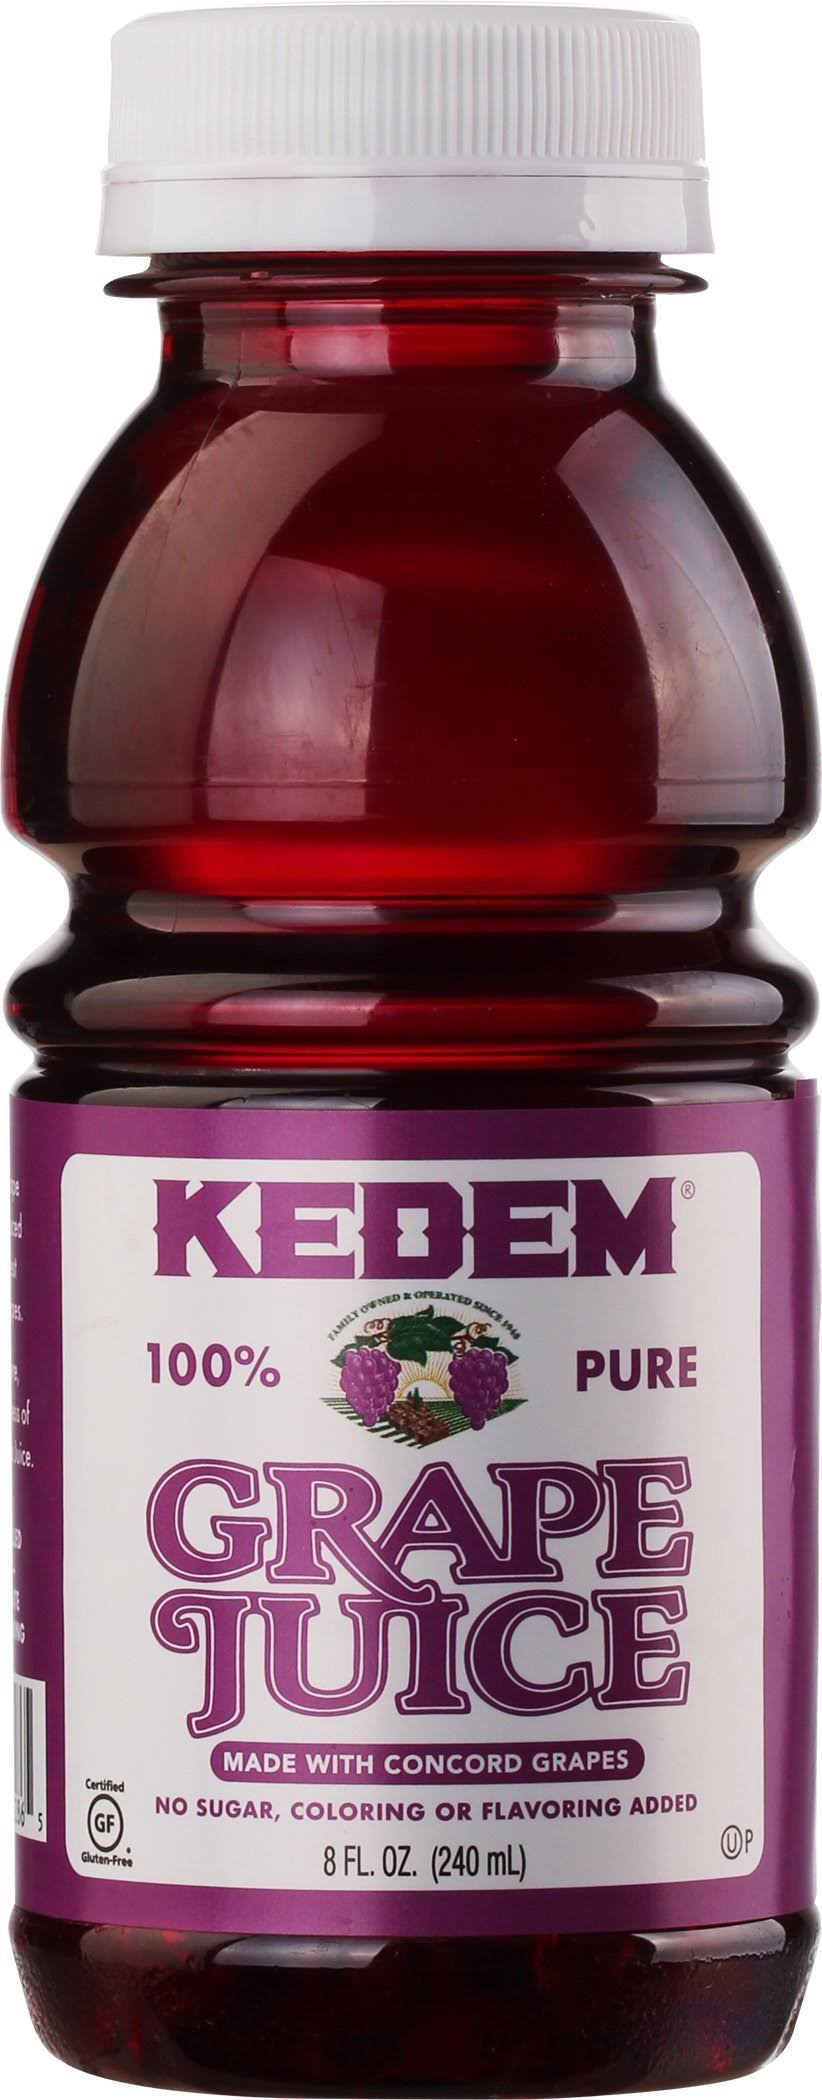 Kedem Grape Juice, 100% Pure - 8 fl oz